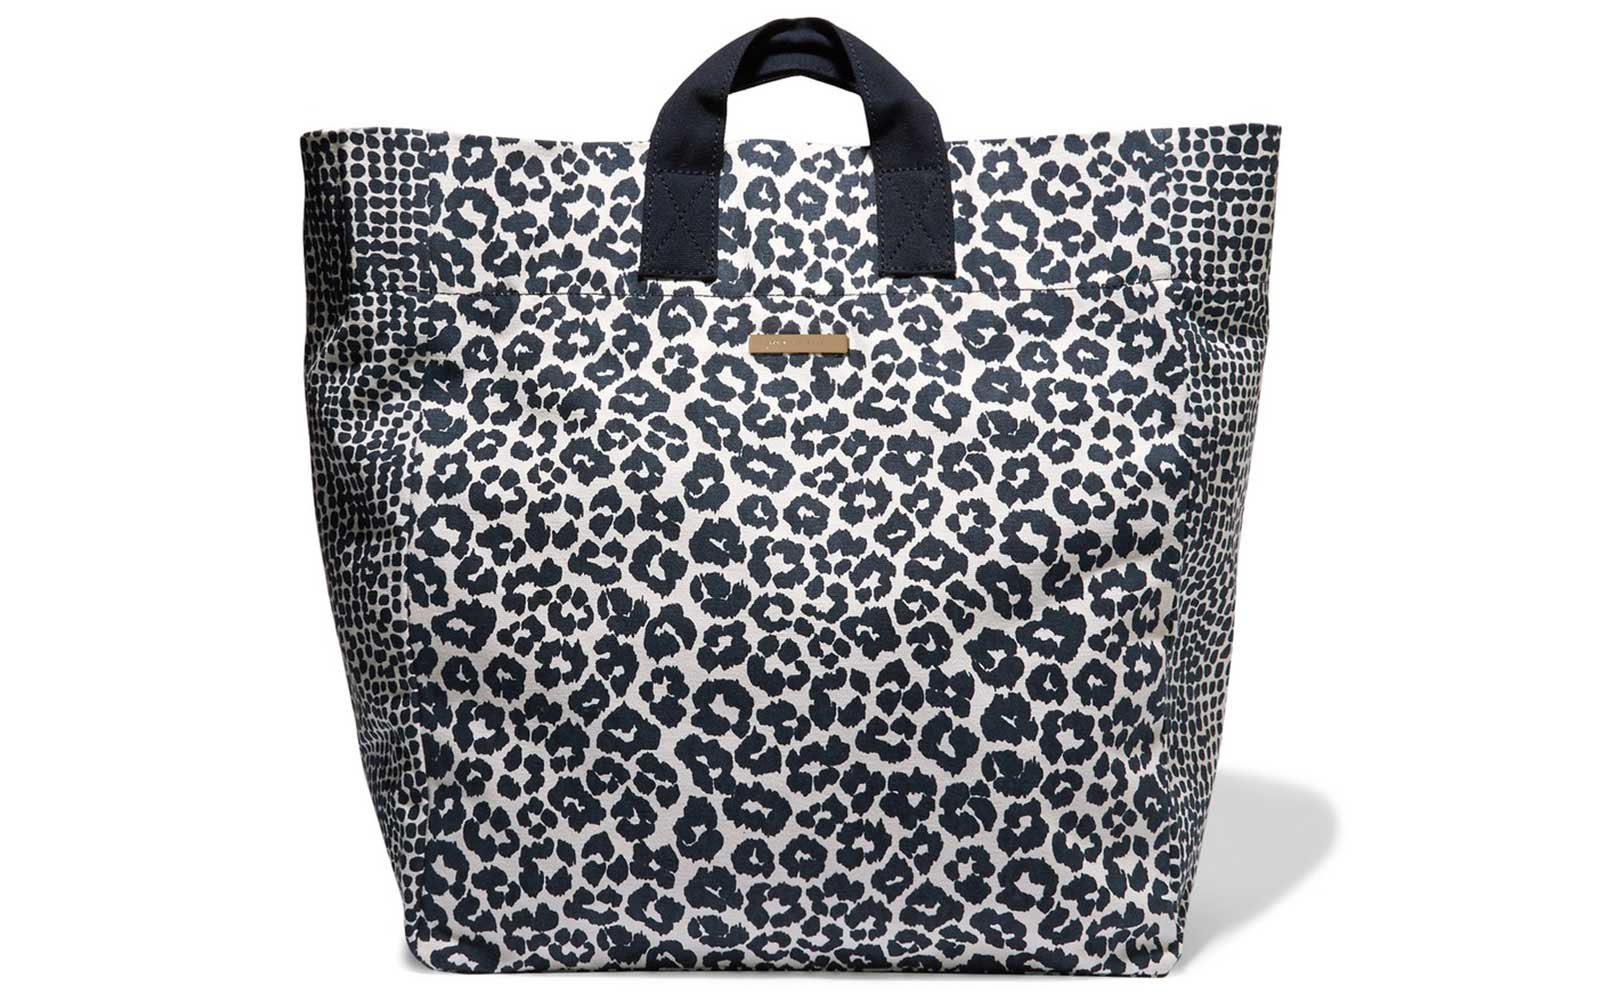 642c70b7a8 Stylish and Sturdy Beach Bags You Can Use As a Carry-on